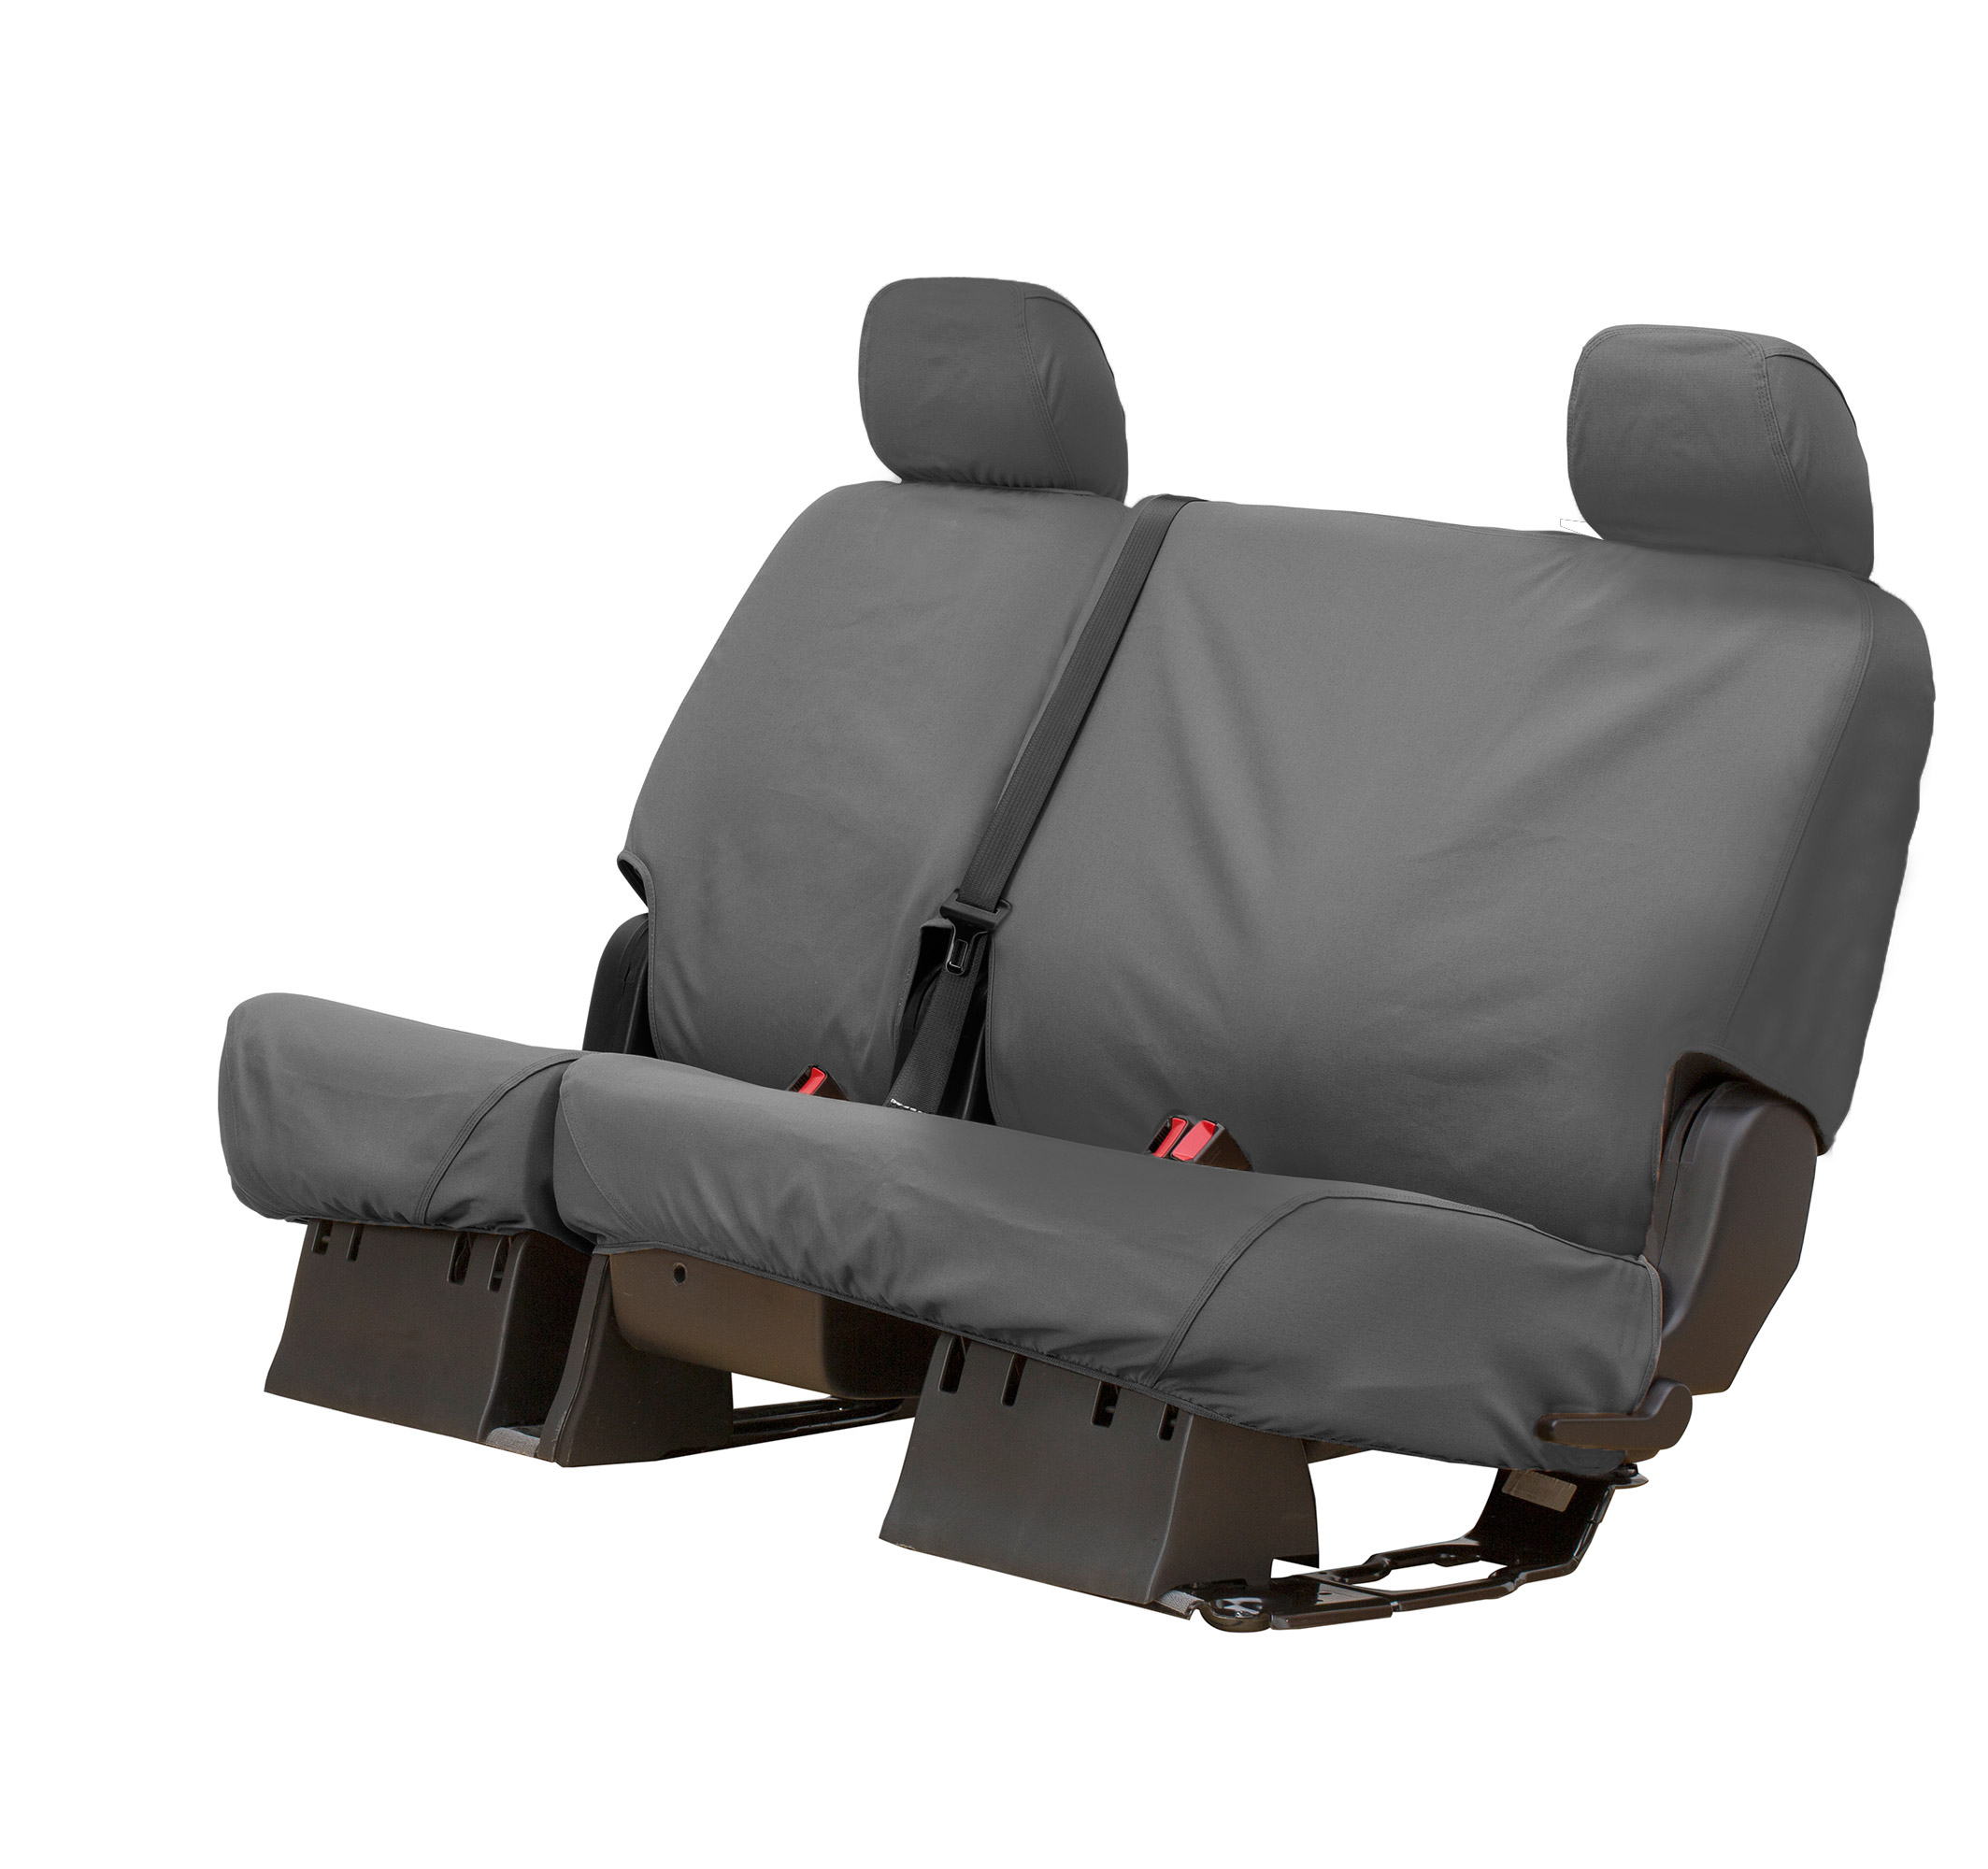 Covercraft Seatsaver Polycotton Rear Seat Cover - Gray